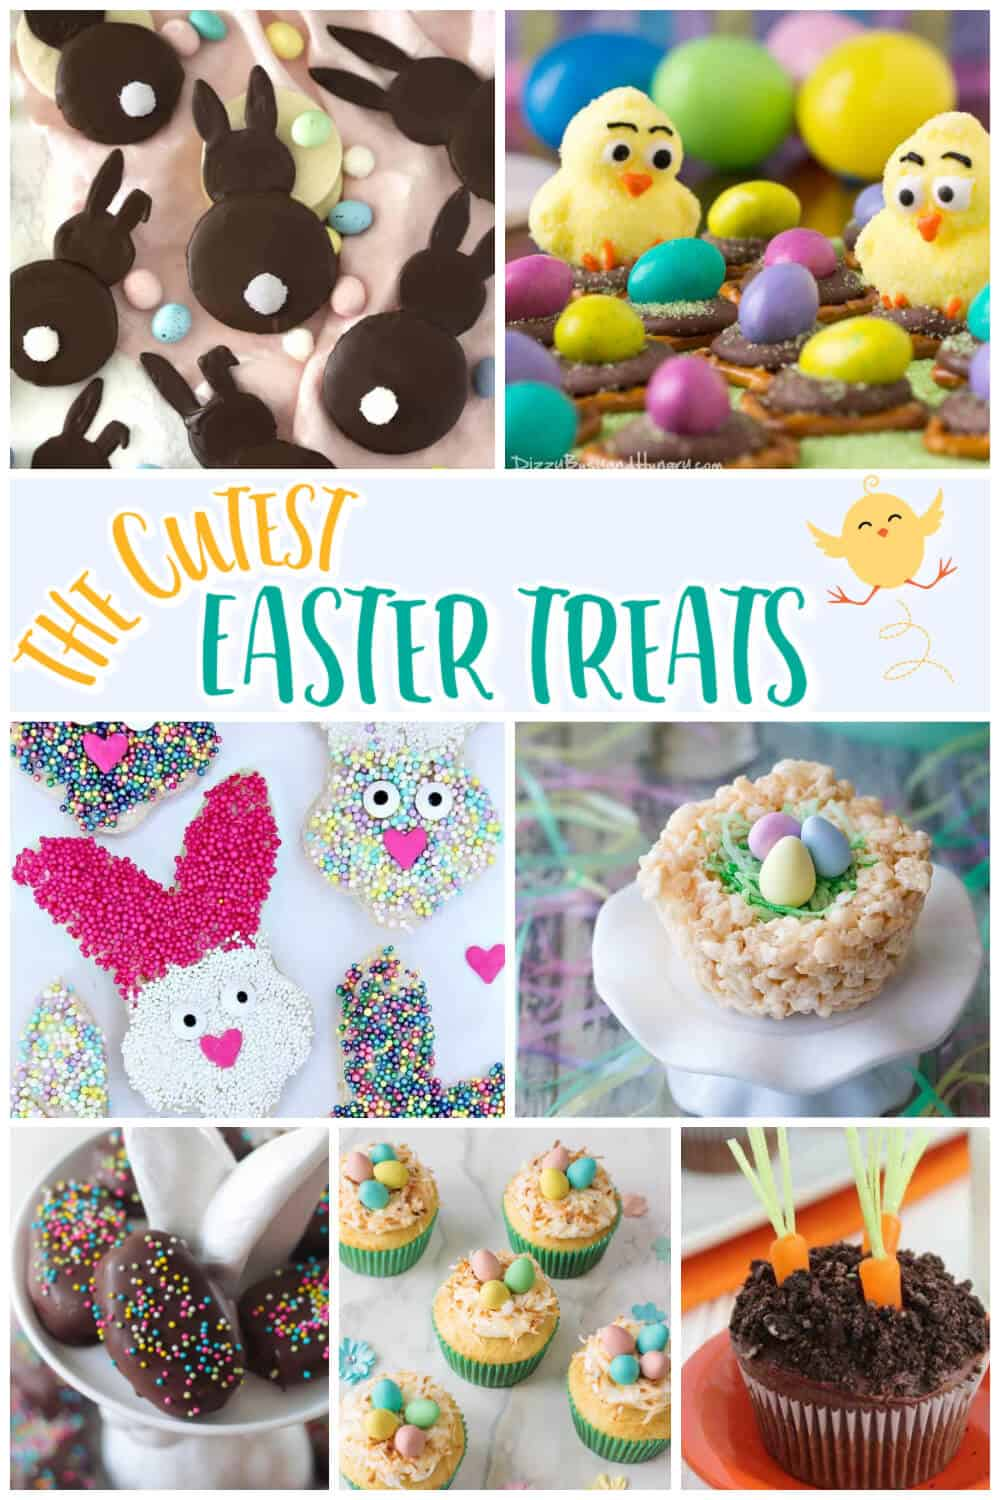 The Cutest Easter Treats for Kids